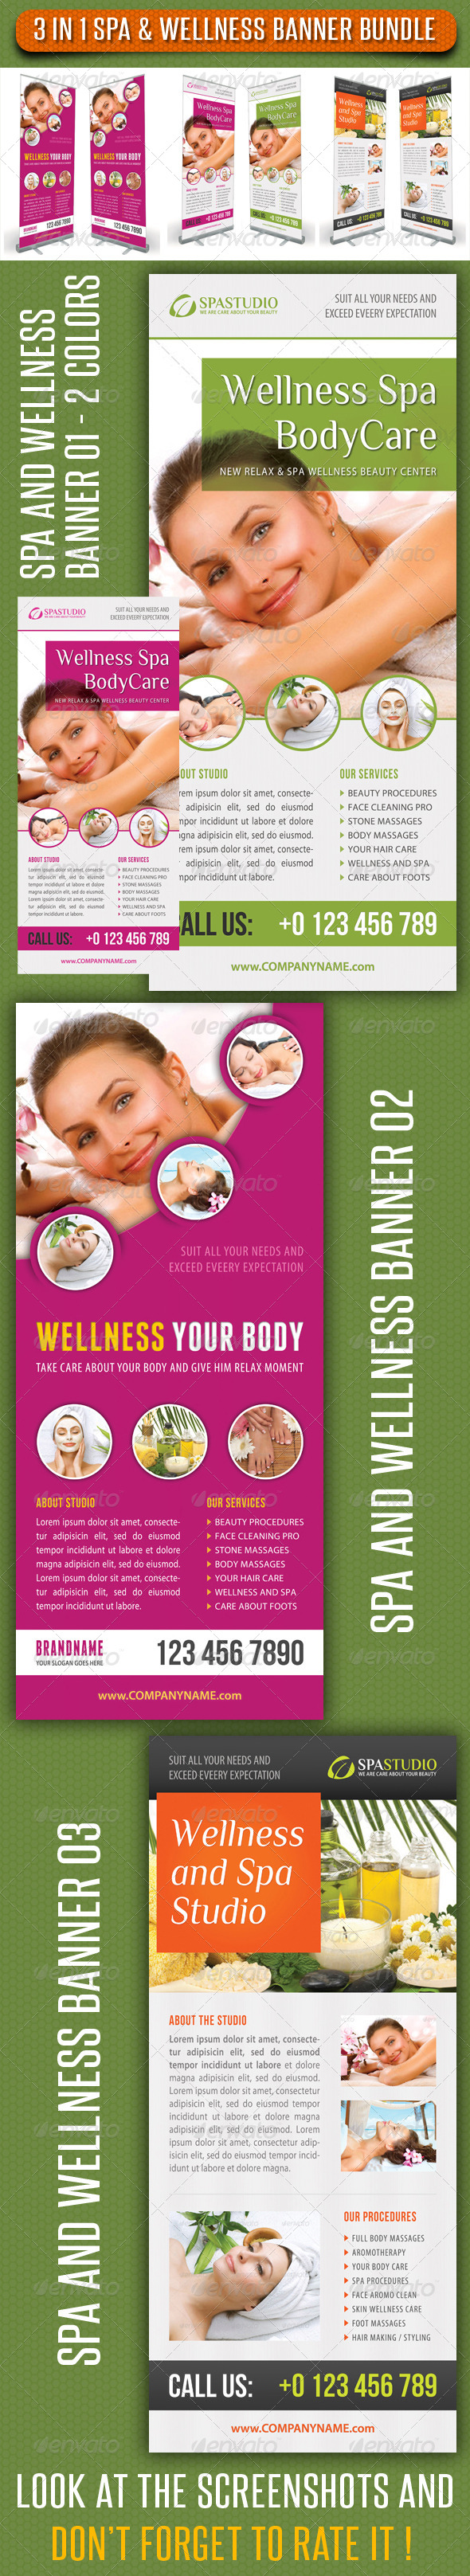 3 in 1 Spa Wellness Banner Bundle 04 - Signage Print Templates